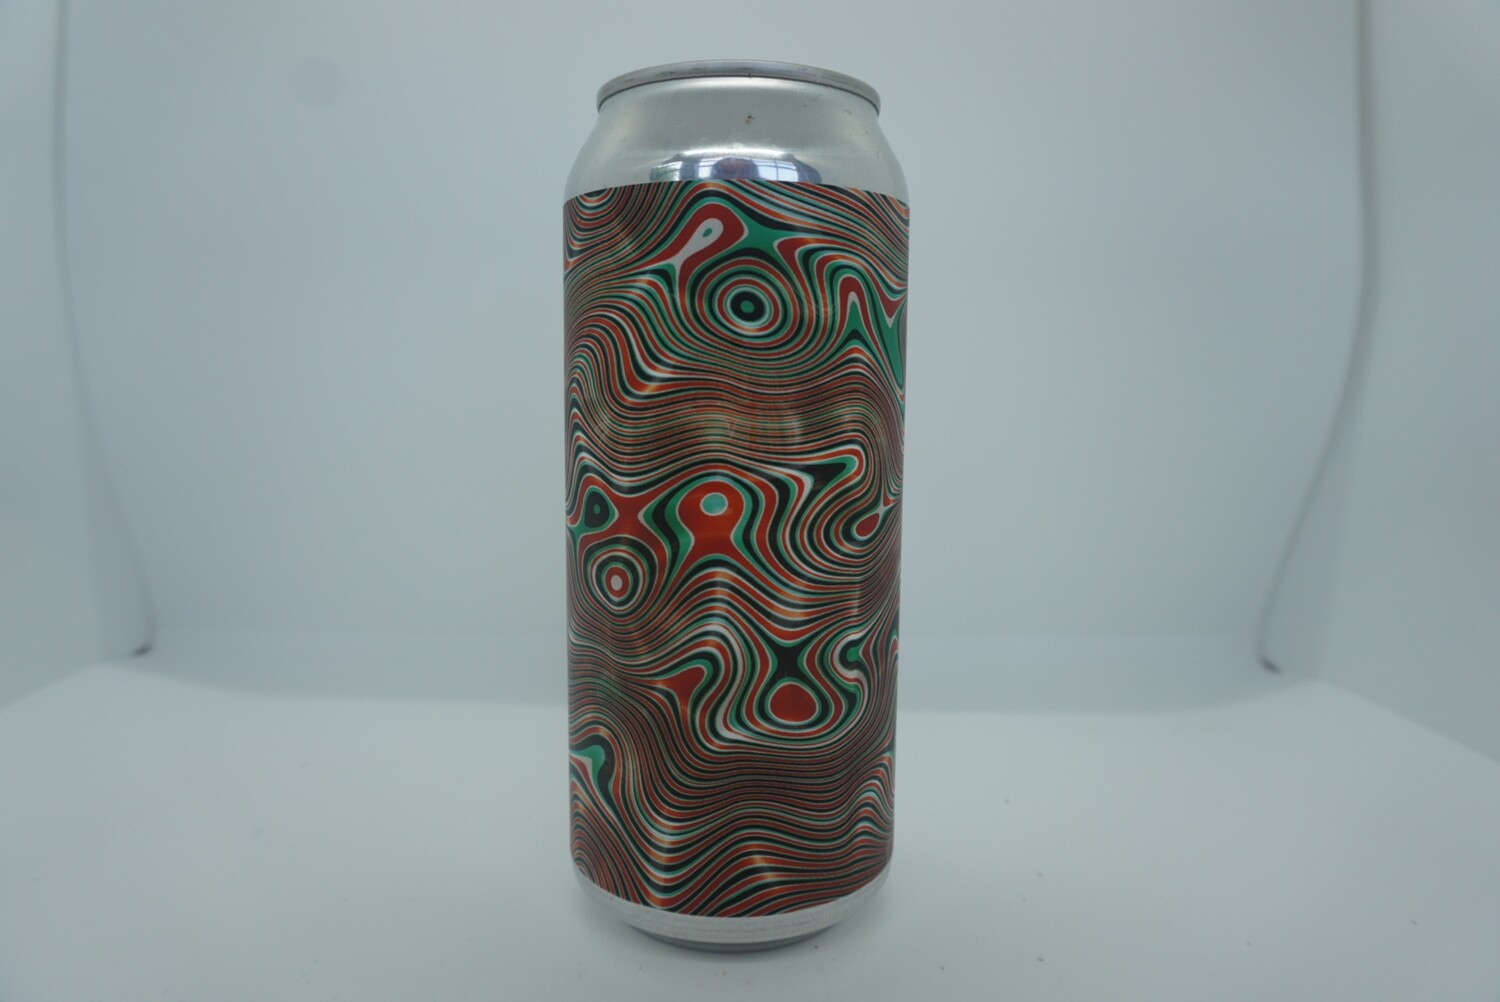 Barreled Souls - Transformer - Pale Ale - 6.4% ABV - 16oz Can